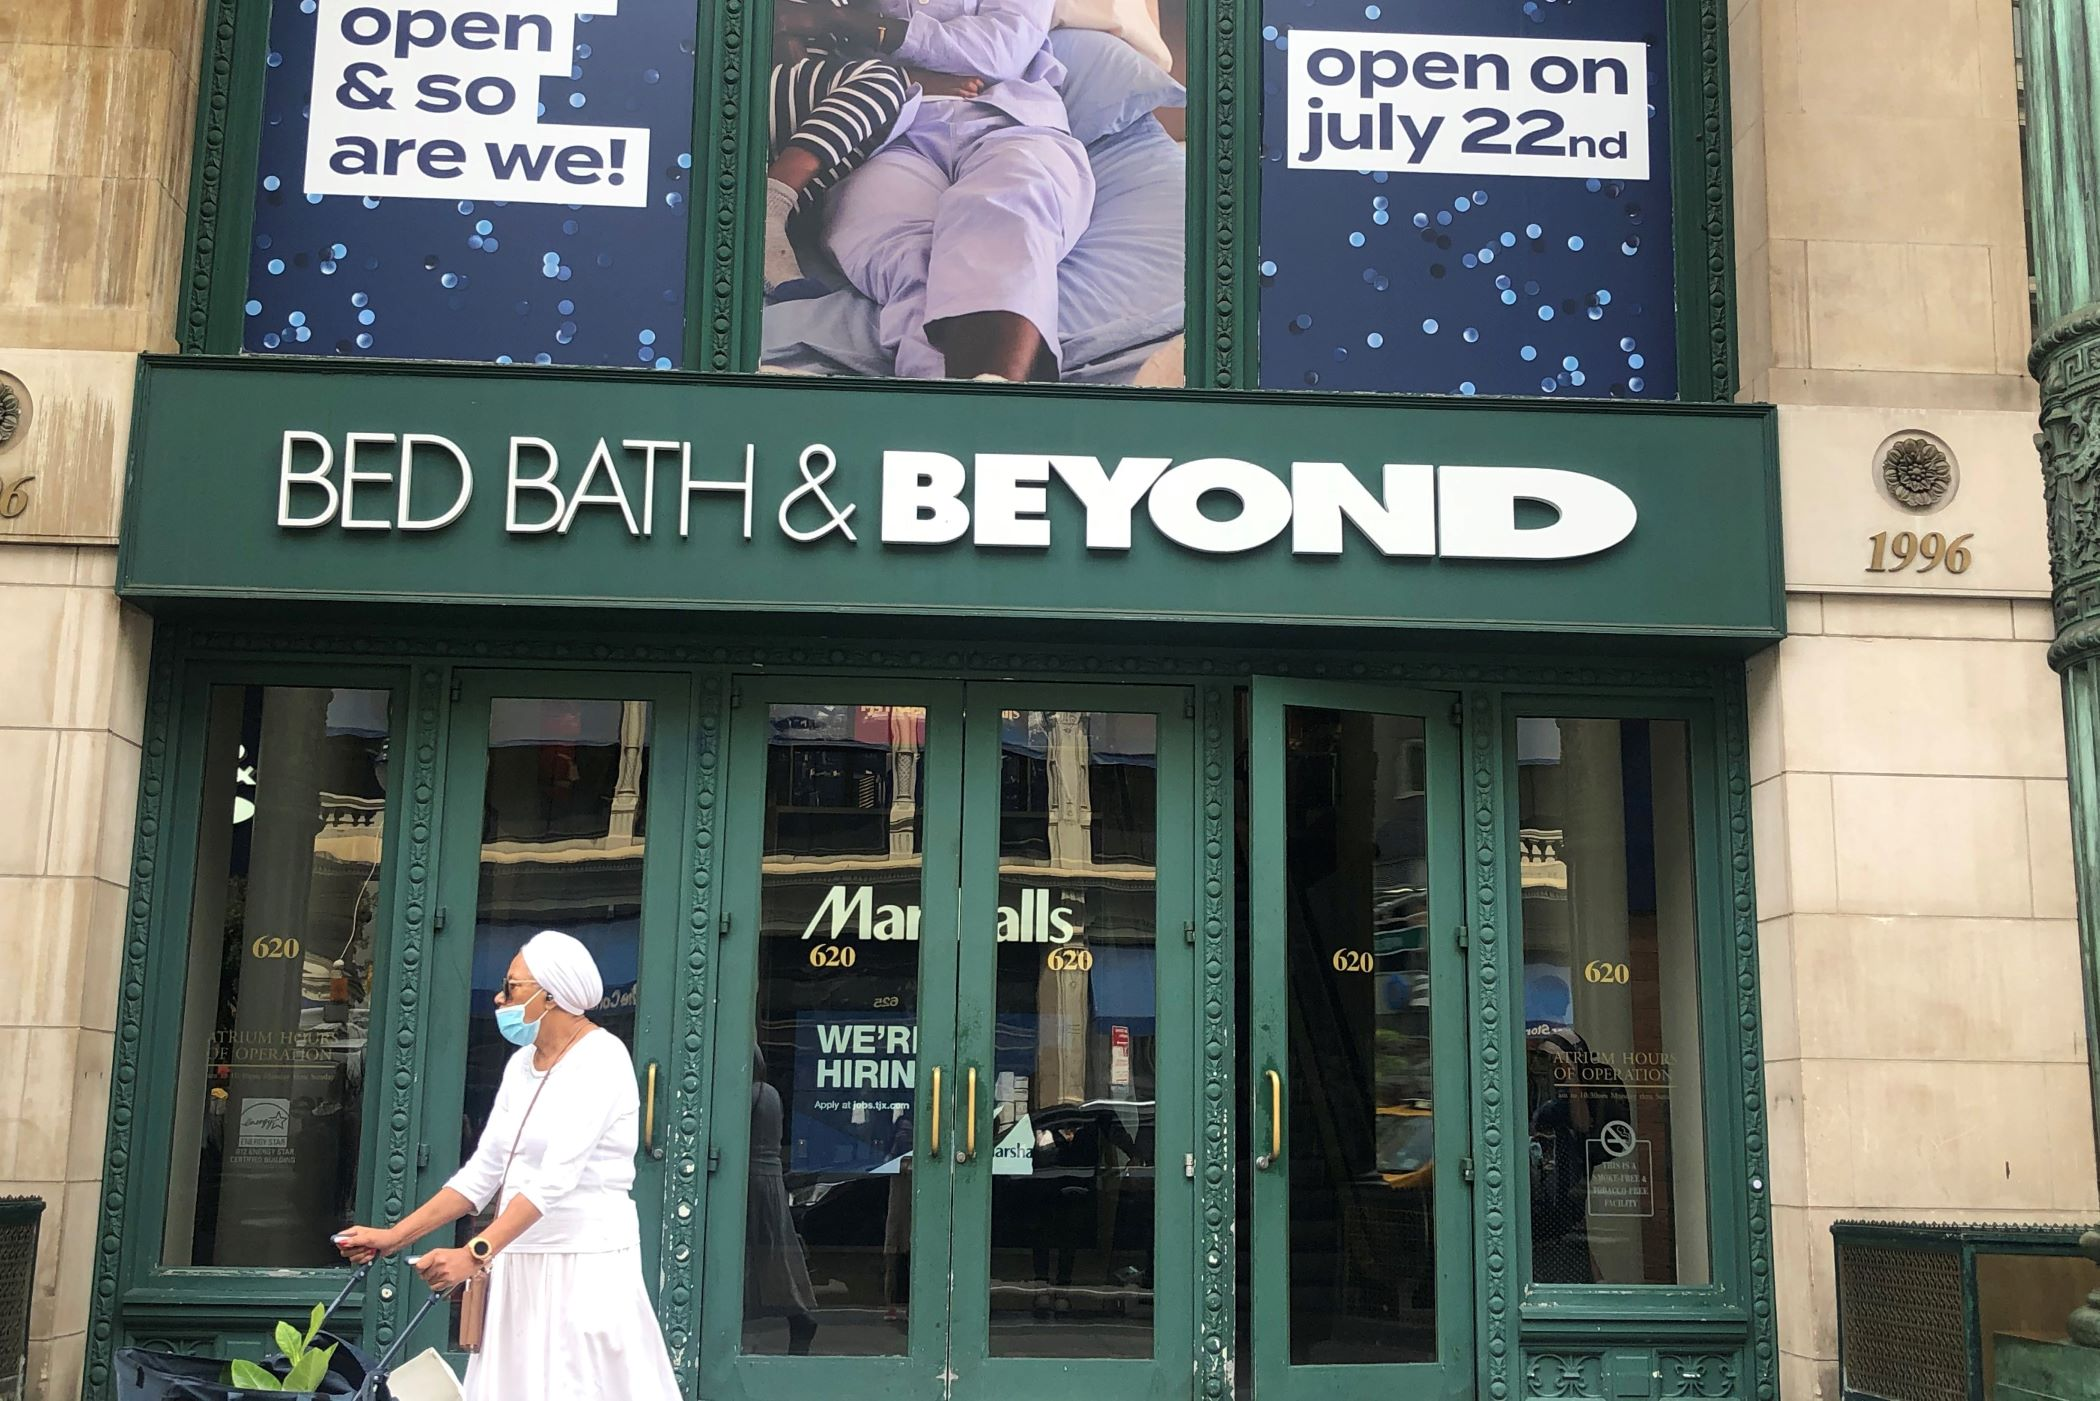 To Compete With Amazon, Bed Bath & Beyond Plans Massive Distribution Hubs on Both Coasts